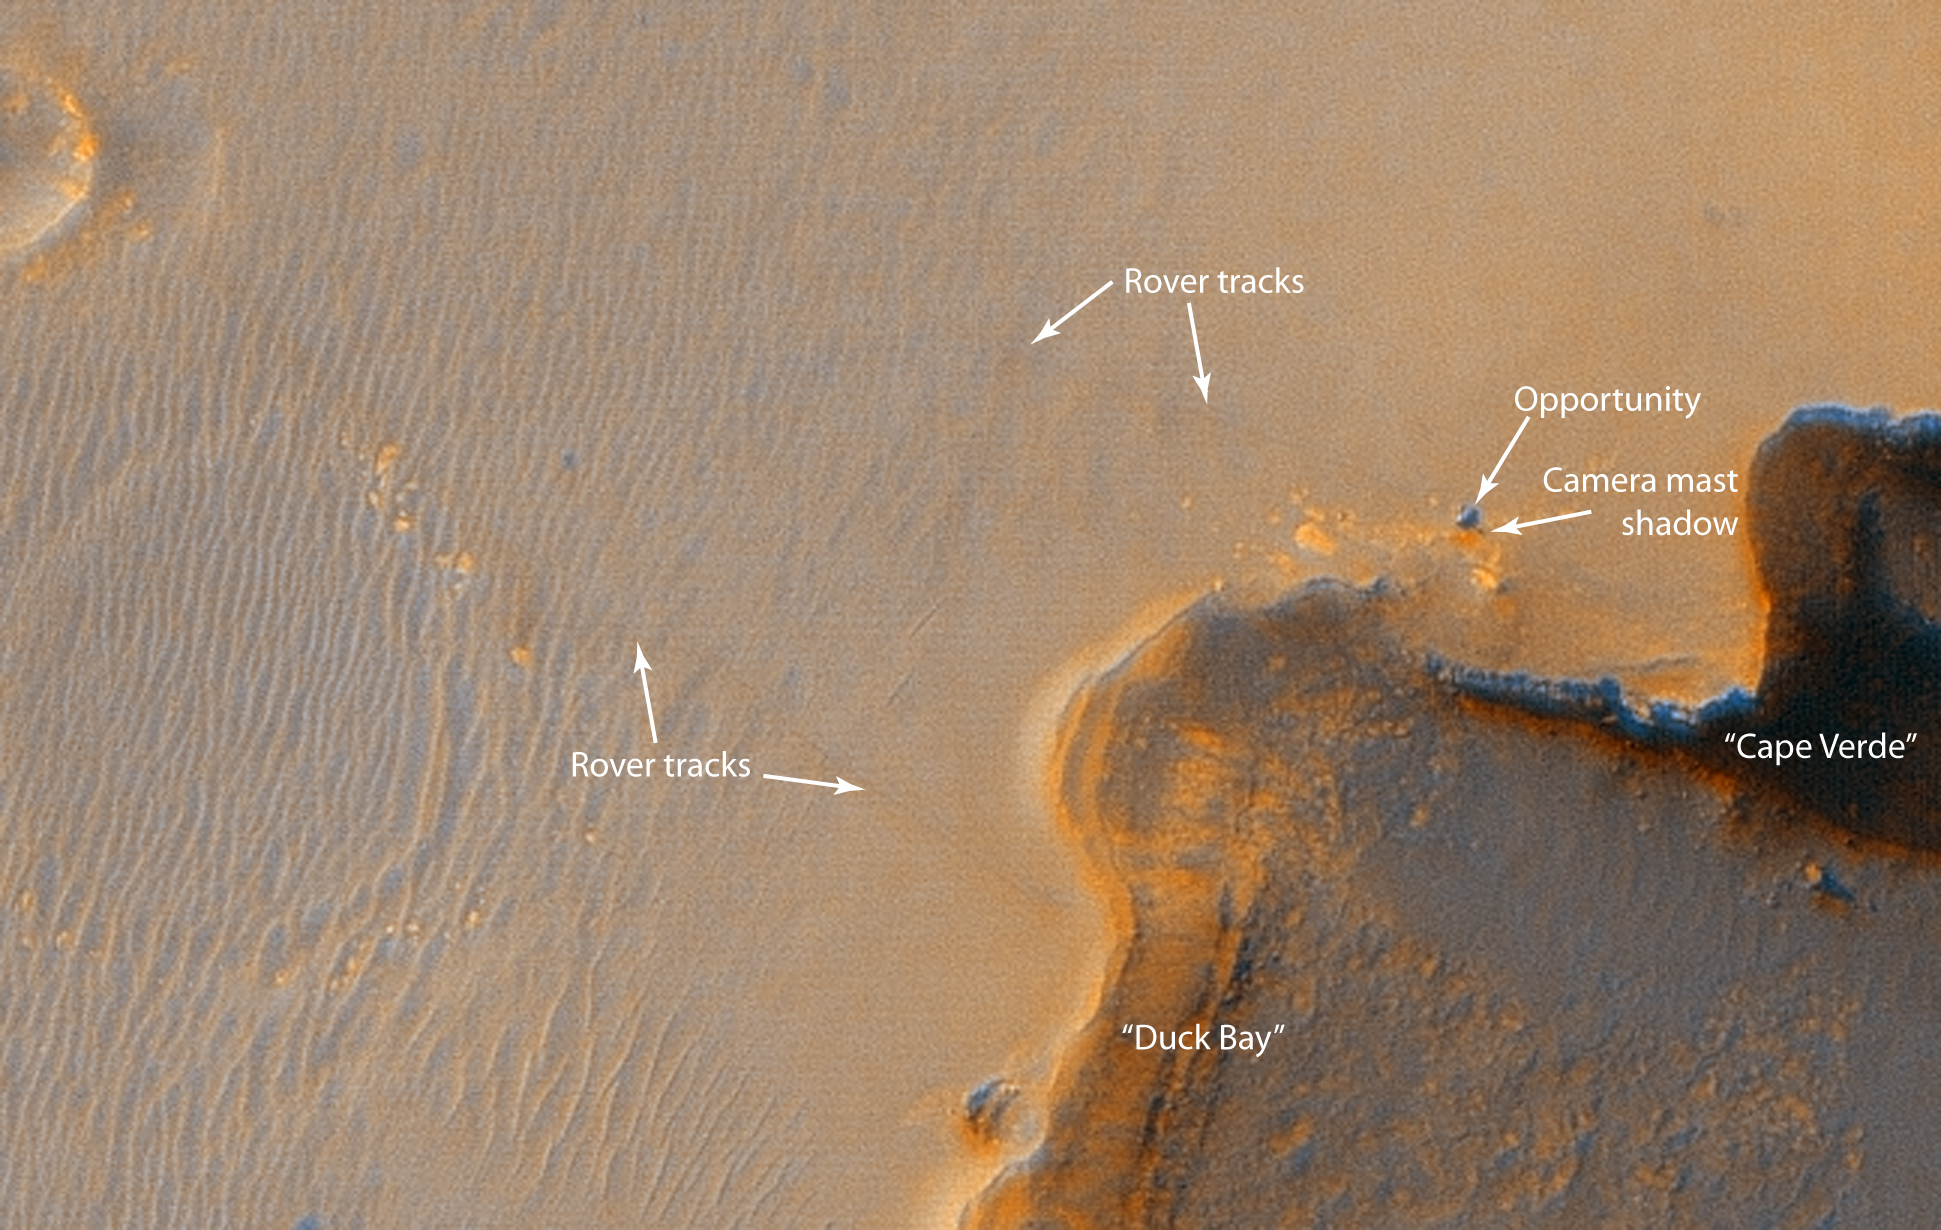 https://i2.wp.com/mars.jpl.nasa.gov/mro/gallery/press/20061006c/rover-color-close-up2-annot.jpg